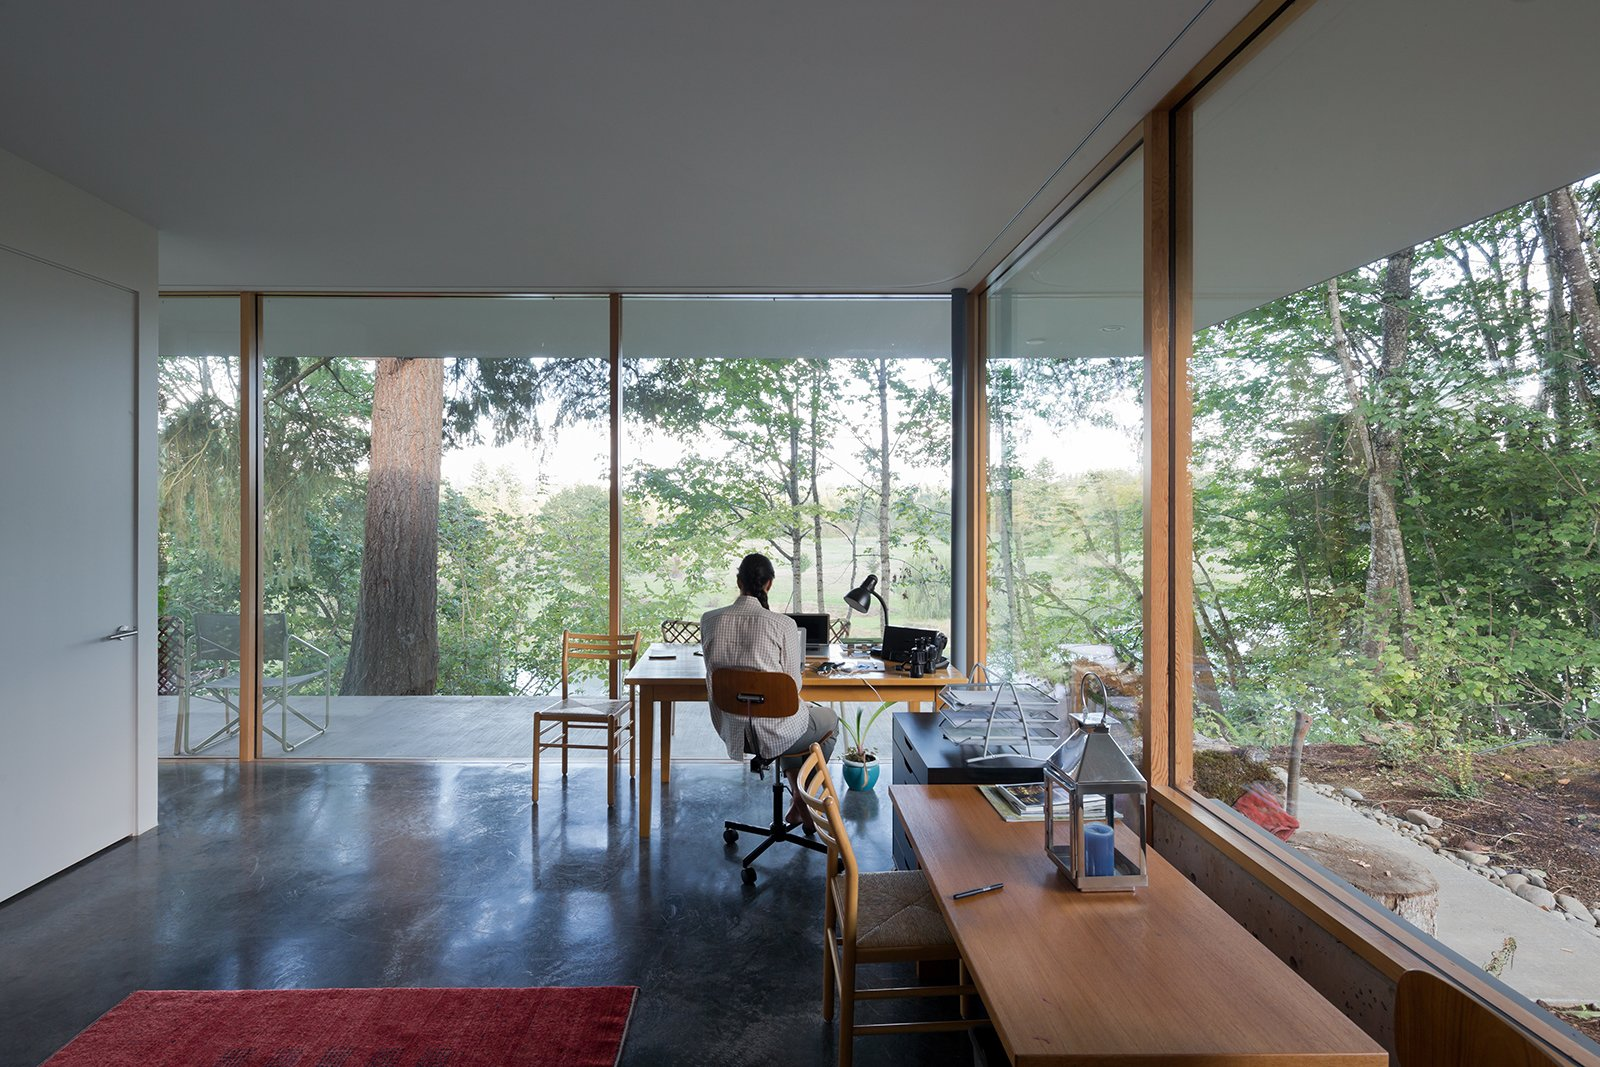 """Office, Study Room Type, Desk, Lamps, Concrete Floor, and Chair """"There are a lot of well-loved, well-used pieces that were destined for this house,"""" Andrea says of the couple's furniture collection. They placed a solid alder Homestead table from Whittier Wood Furniture in the office, which also overlooks the pond.  Indoors/Outdoors from This House Gets Better with Age"""